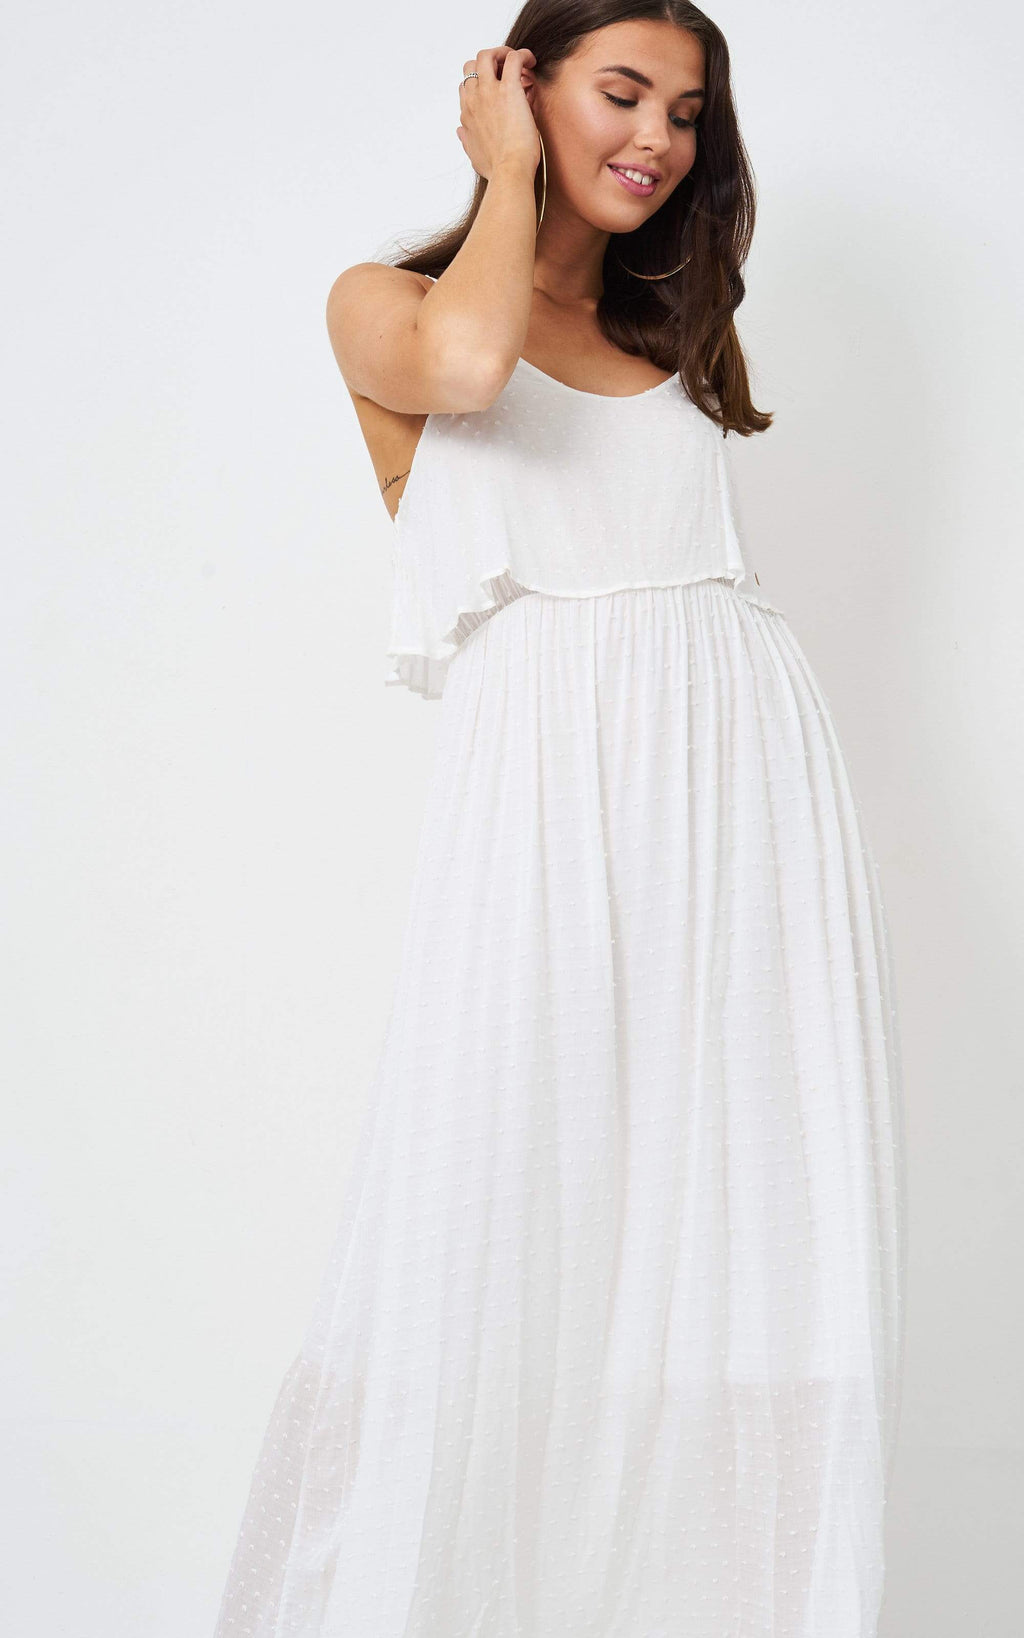 Willow White Layered Frill Maxi Dress - love frontrow